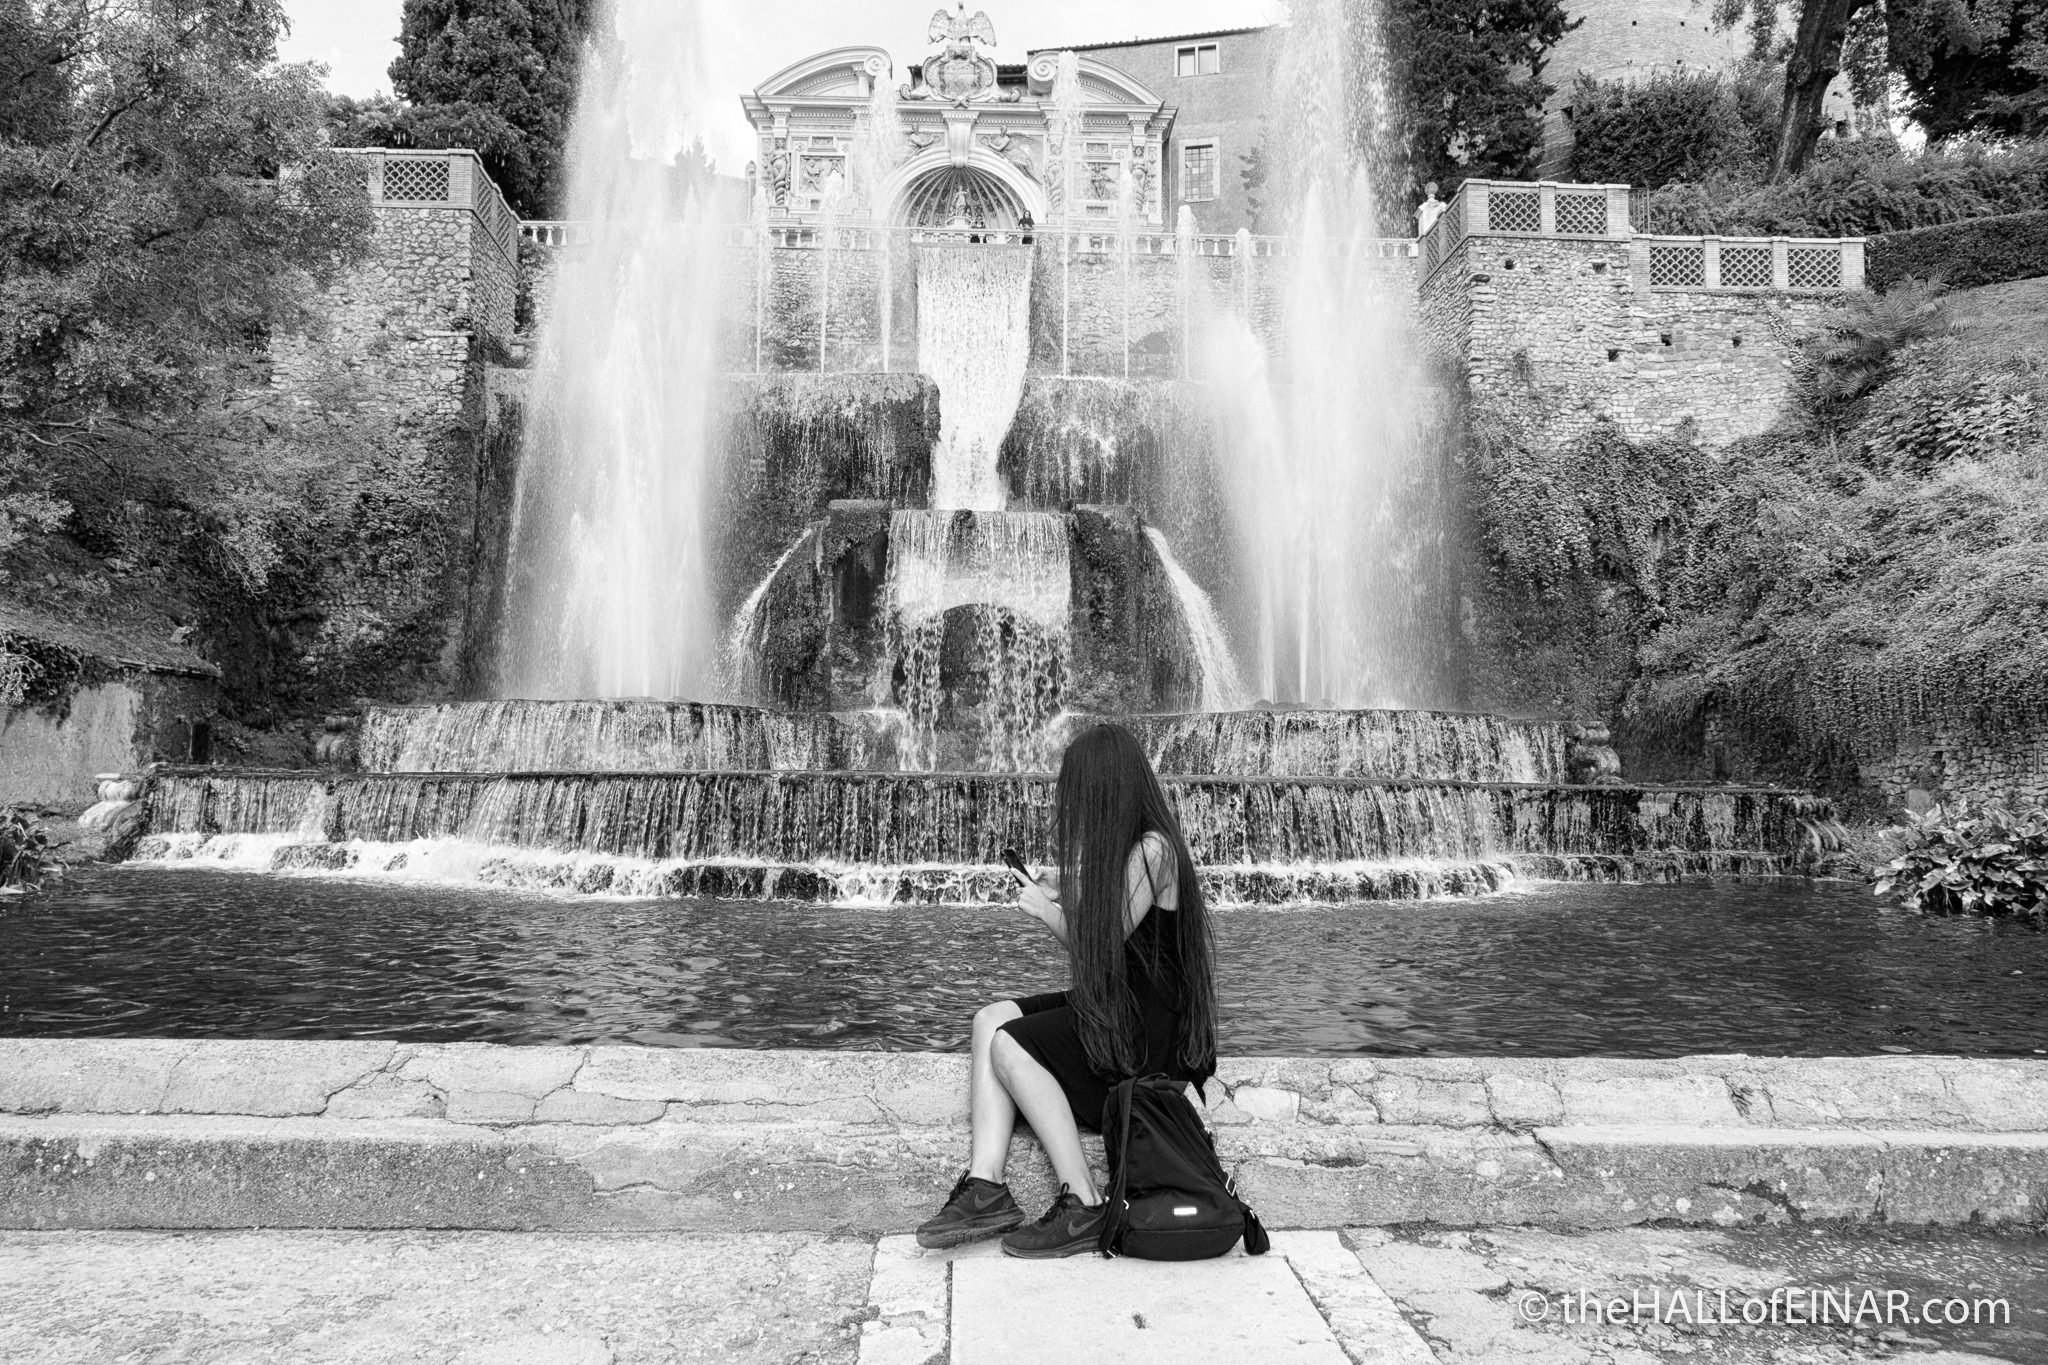 Villa d'Este - The Hall of Einar - photograph (c) David Bailey (not the)